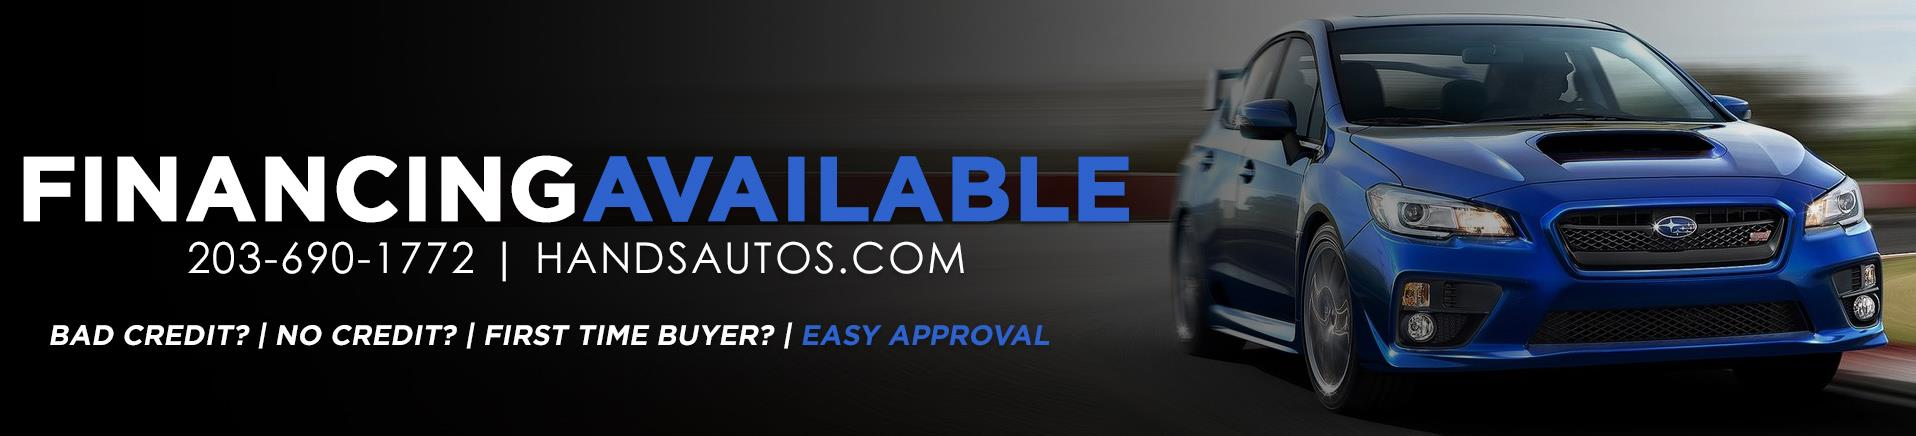 H S Used Cars Stratford Ct